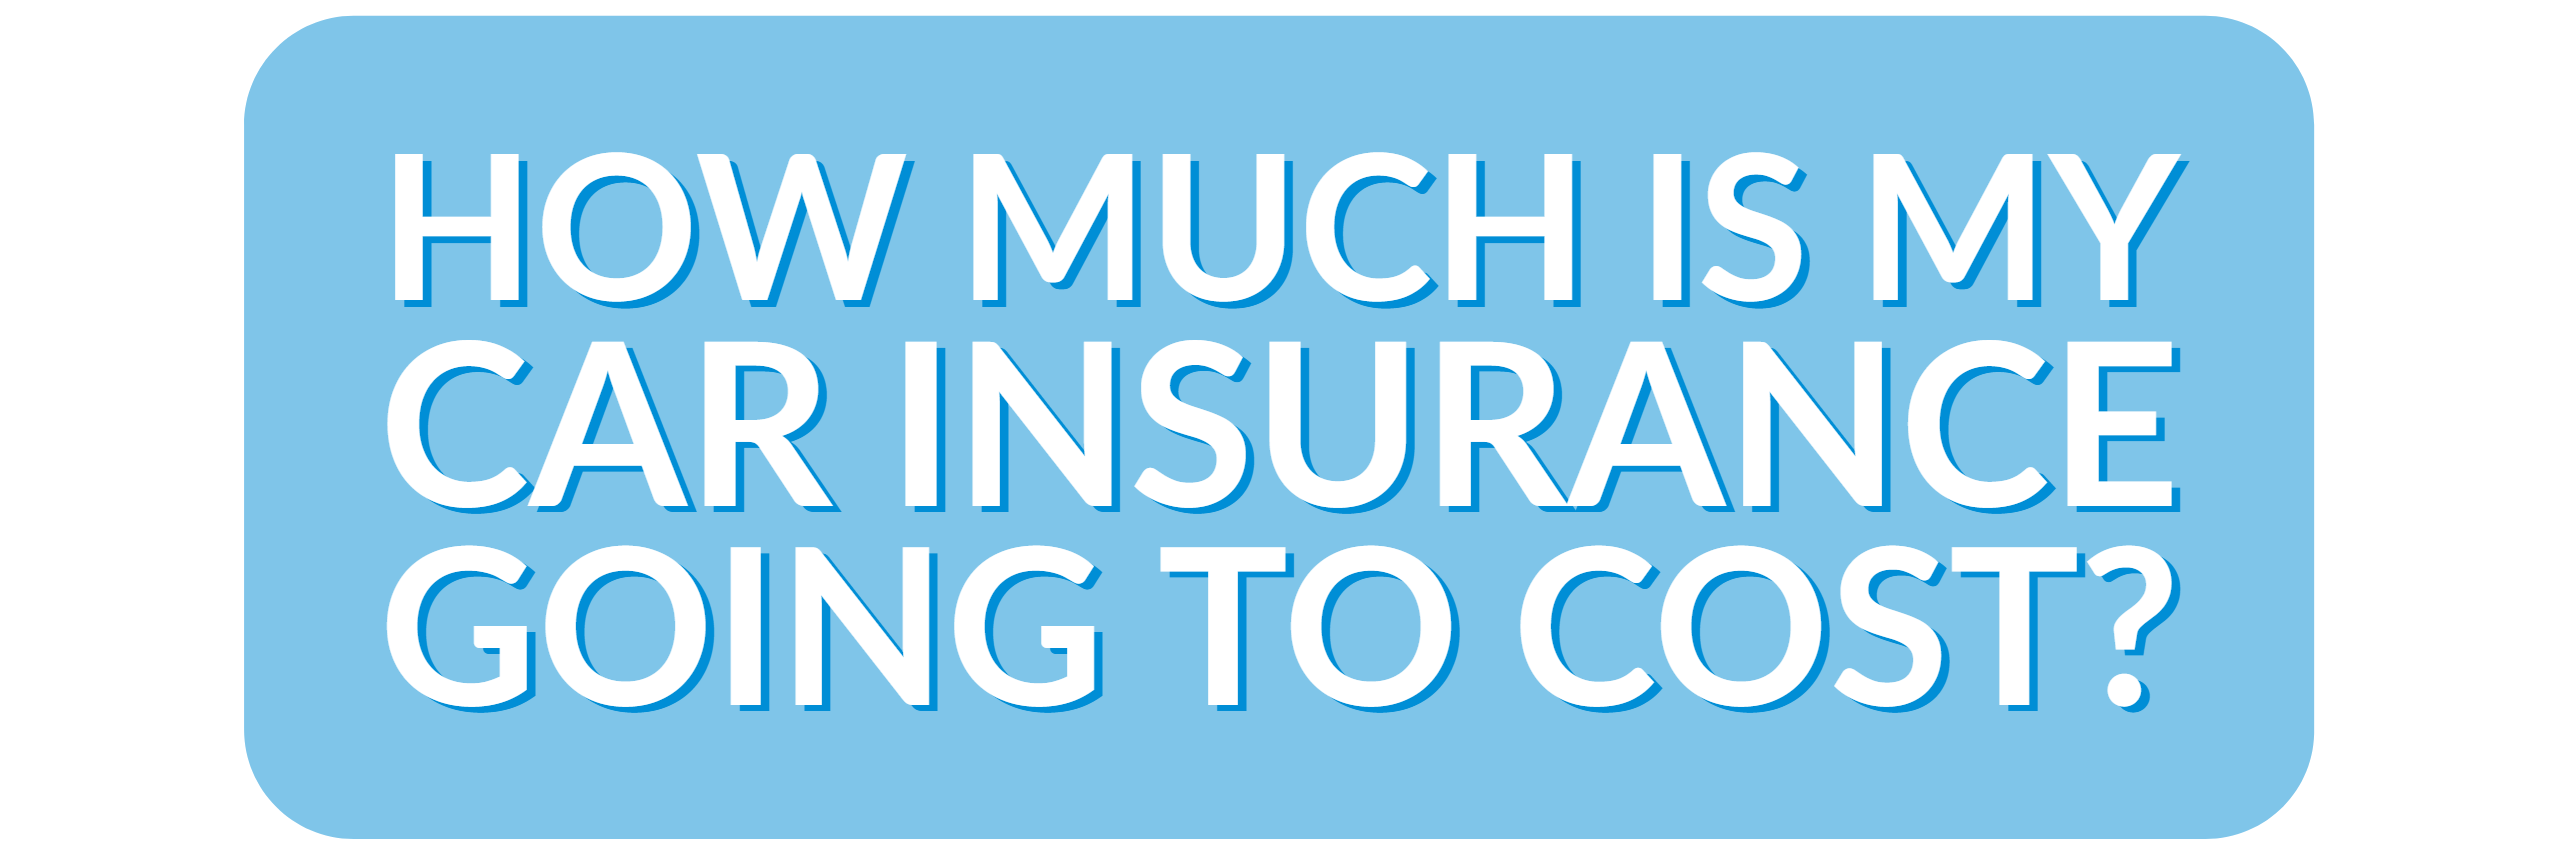 How much is my car insurance going to cost? [quote]